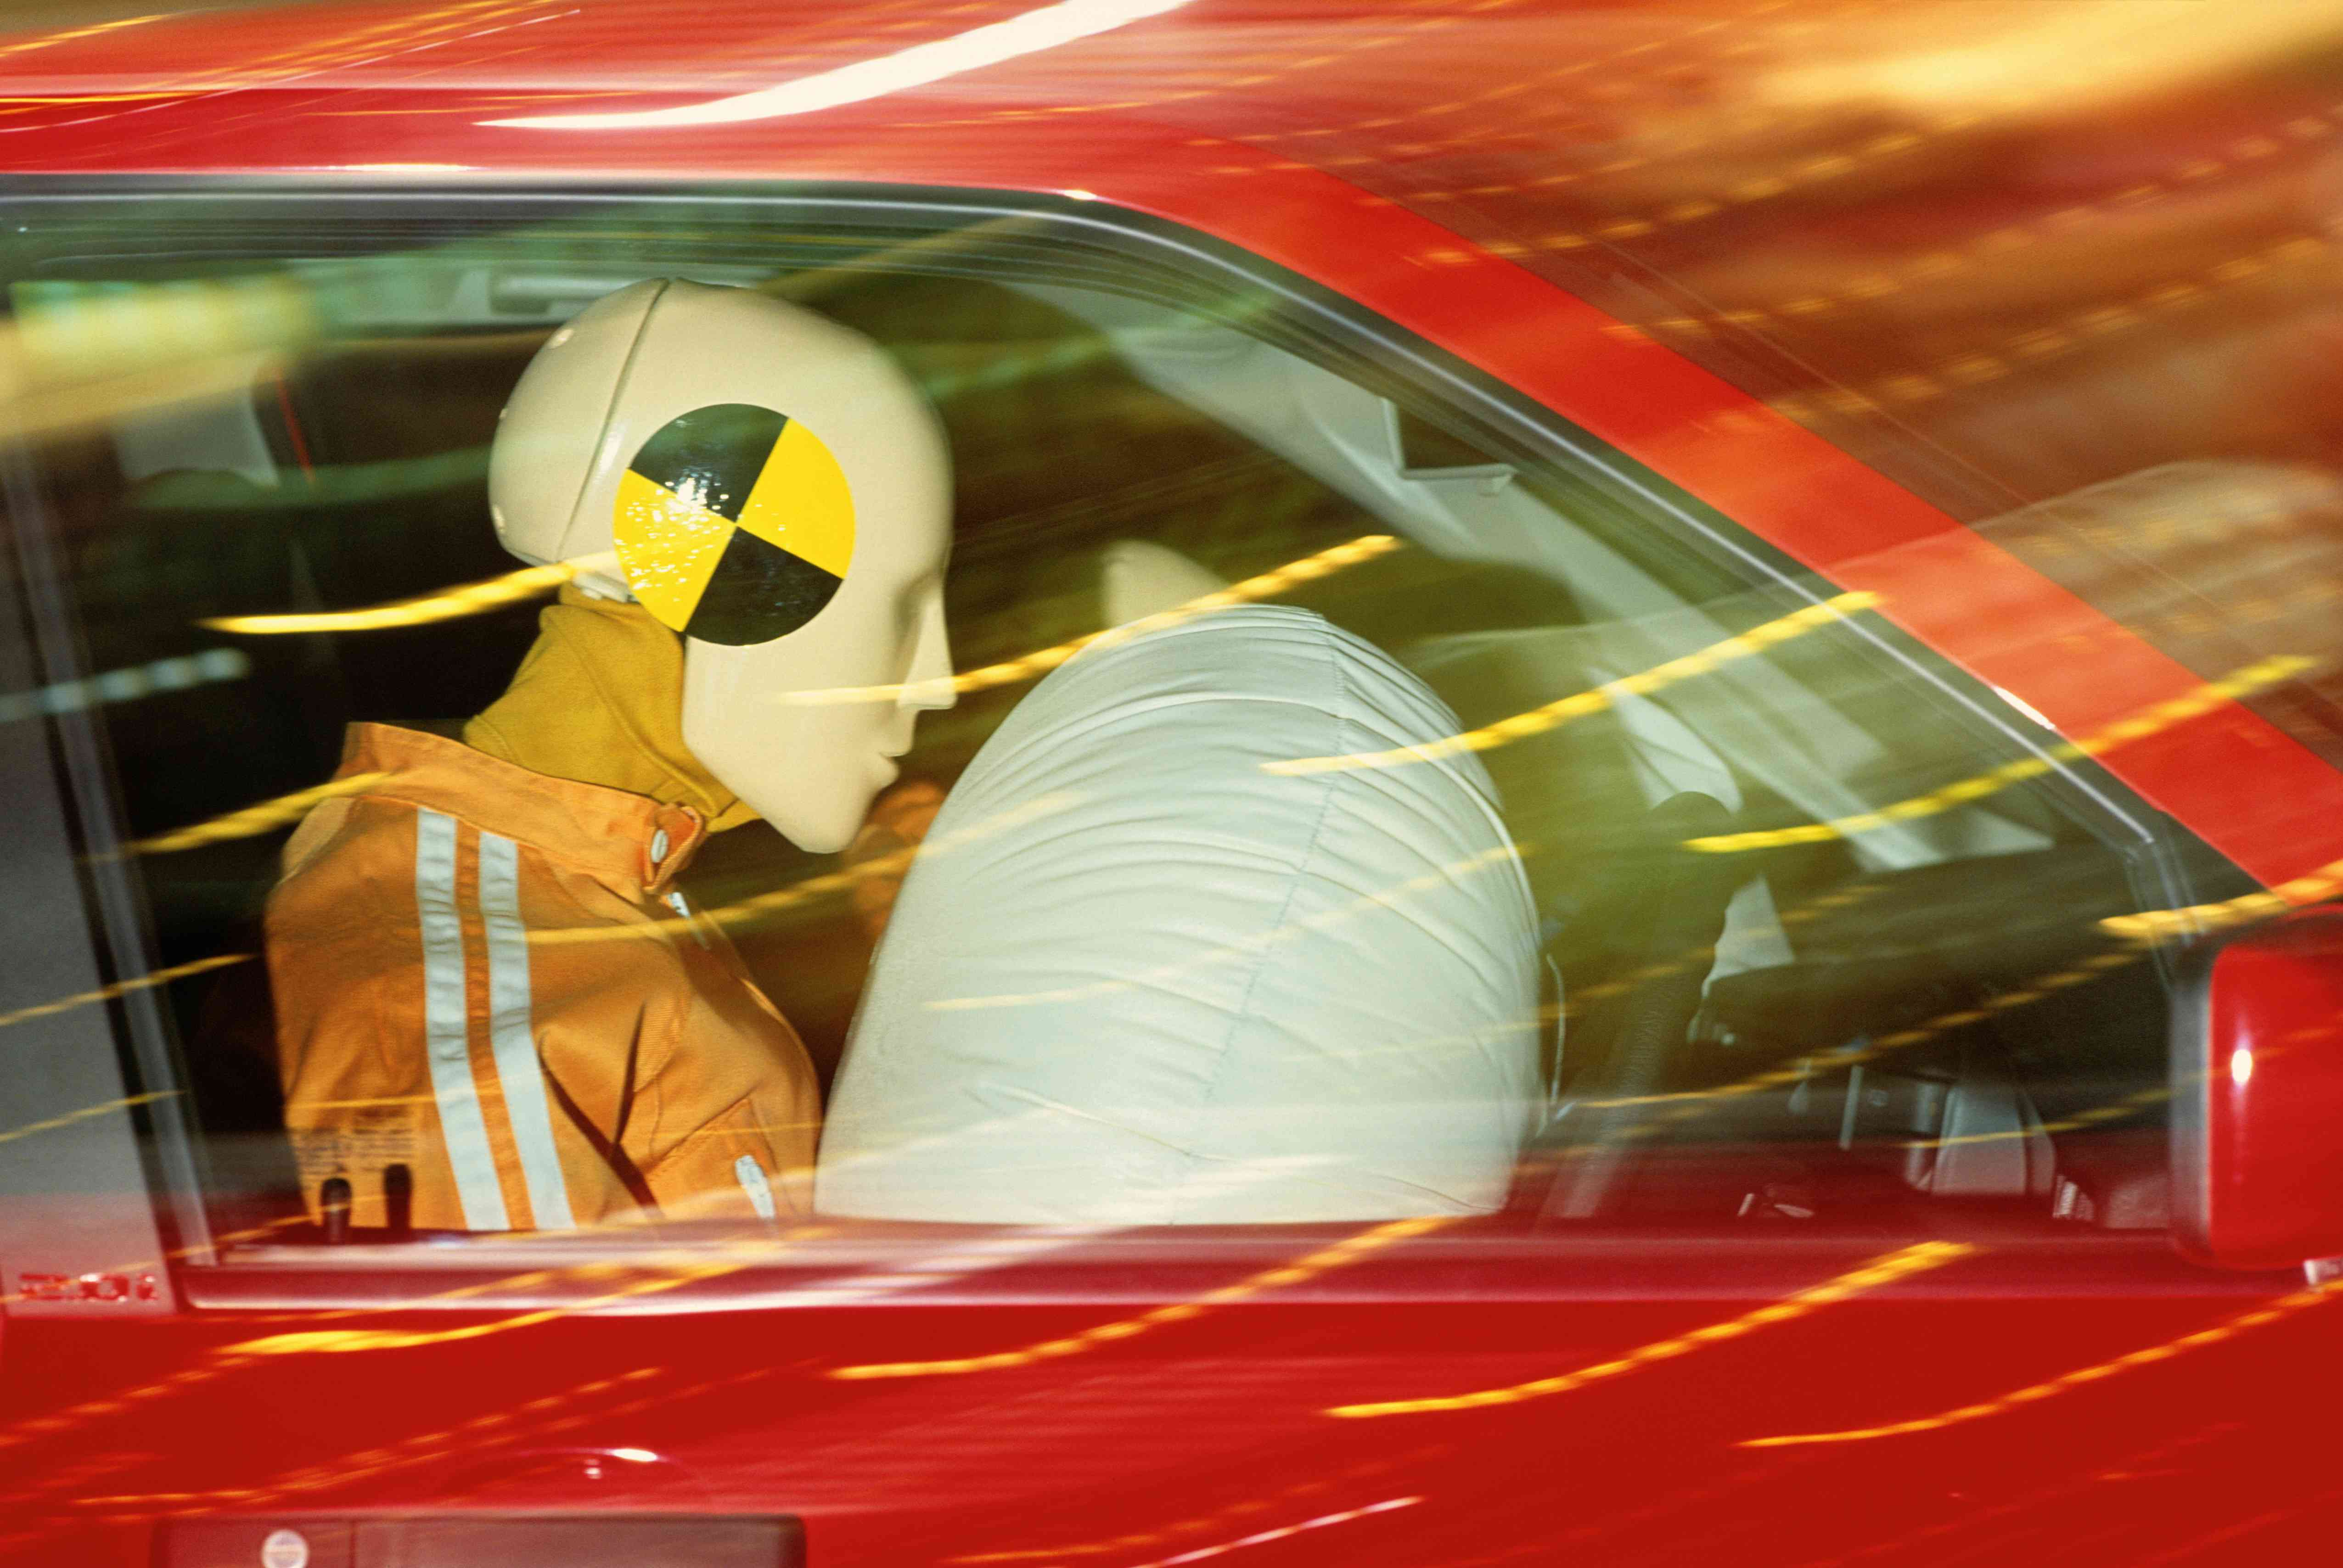 Air bag safety demonstration with test dummy